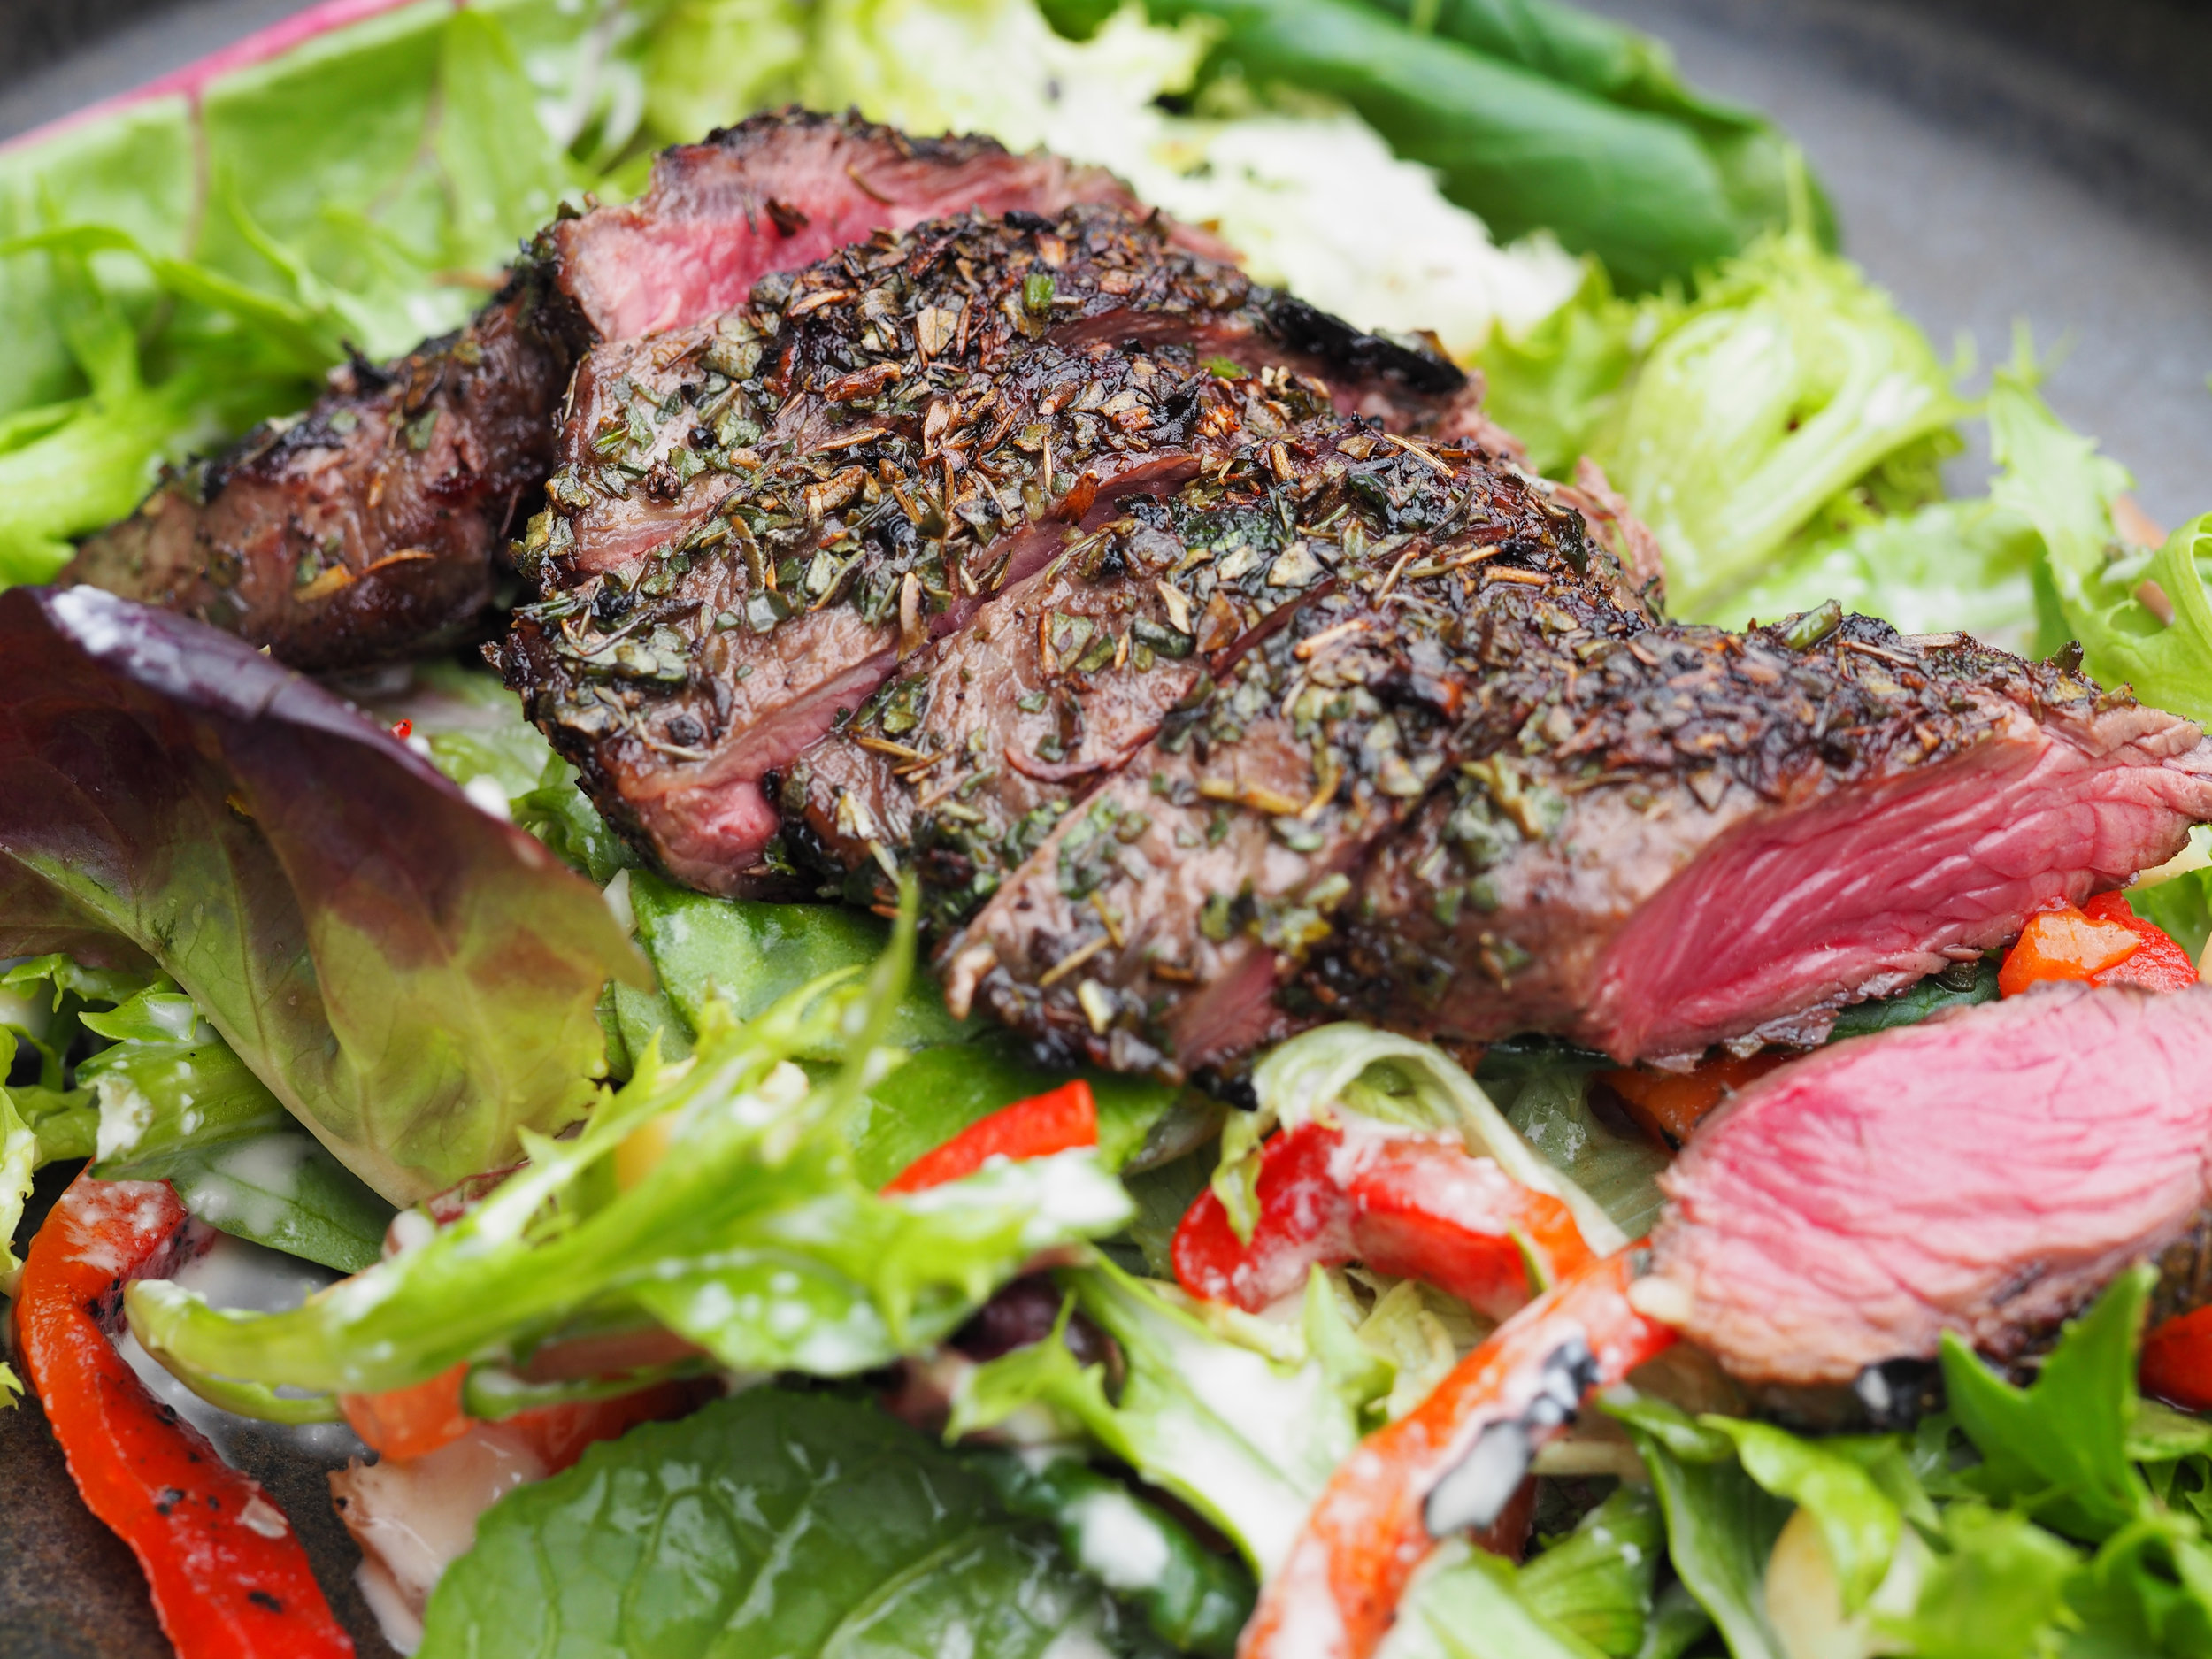 Roo fillet salad  with native thyme and saltbush roo fillet and a lemon myrtle and fingerlime dressing.